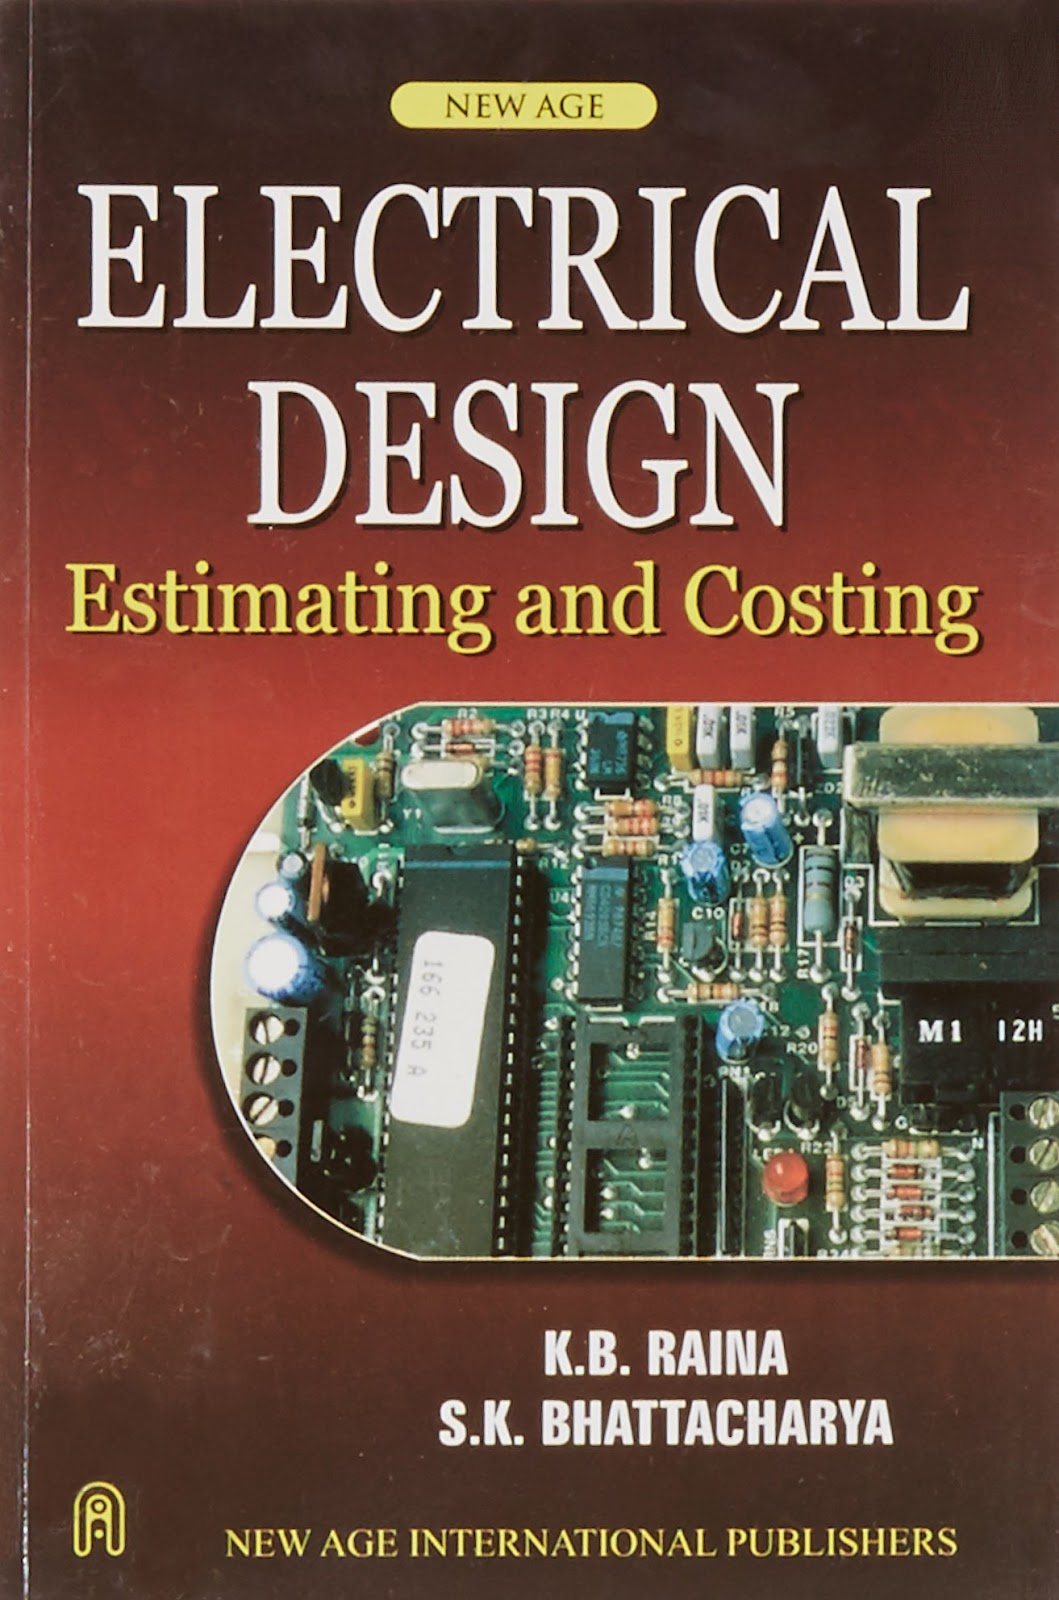 medium resolution of electrical design estimating and costing pdf